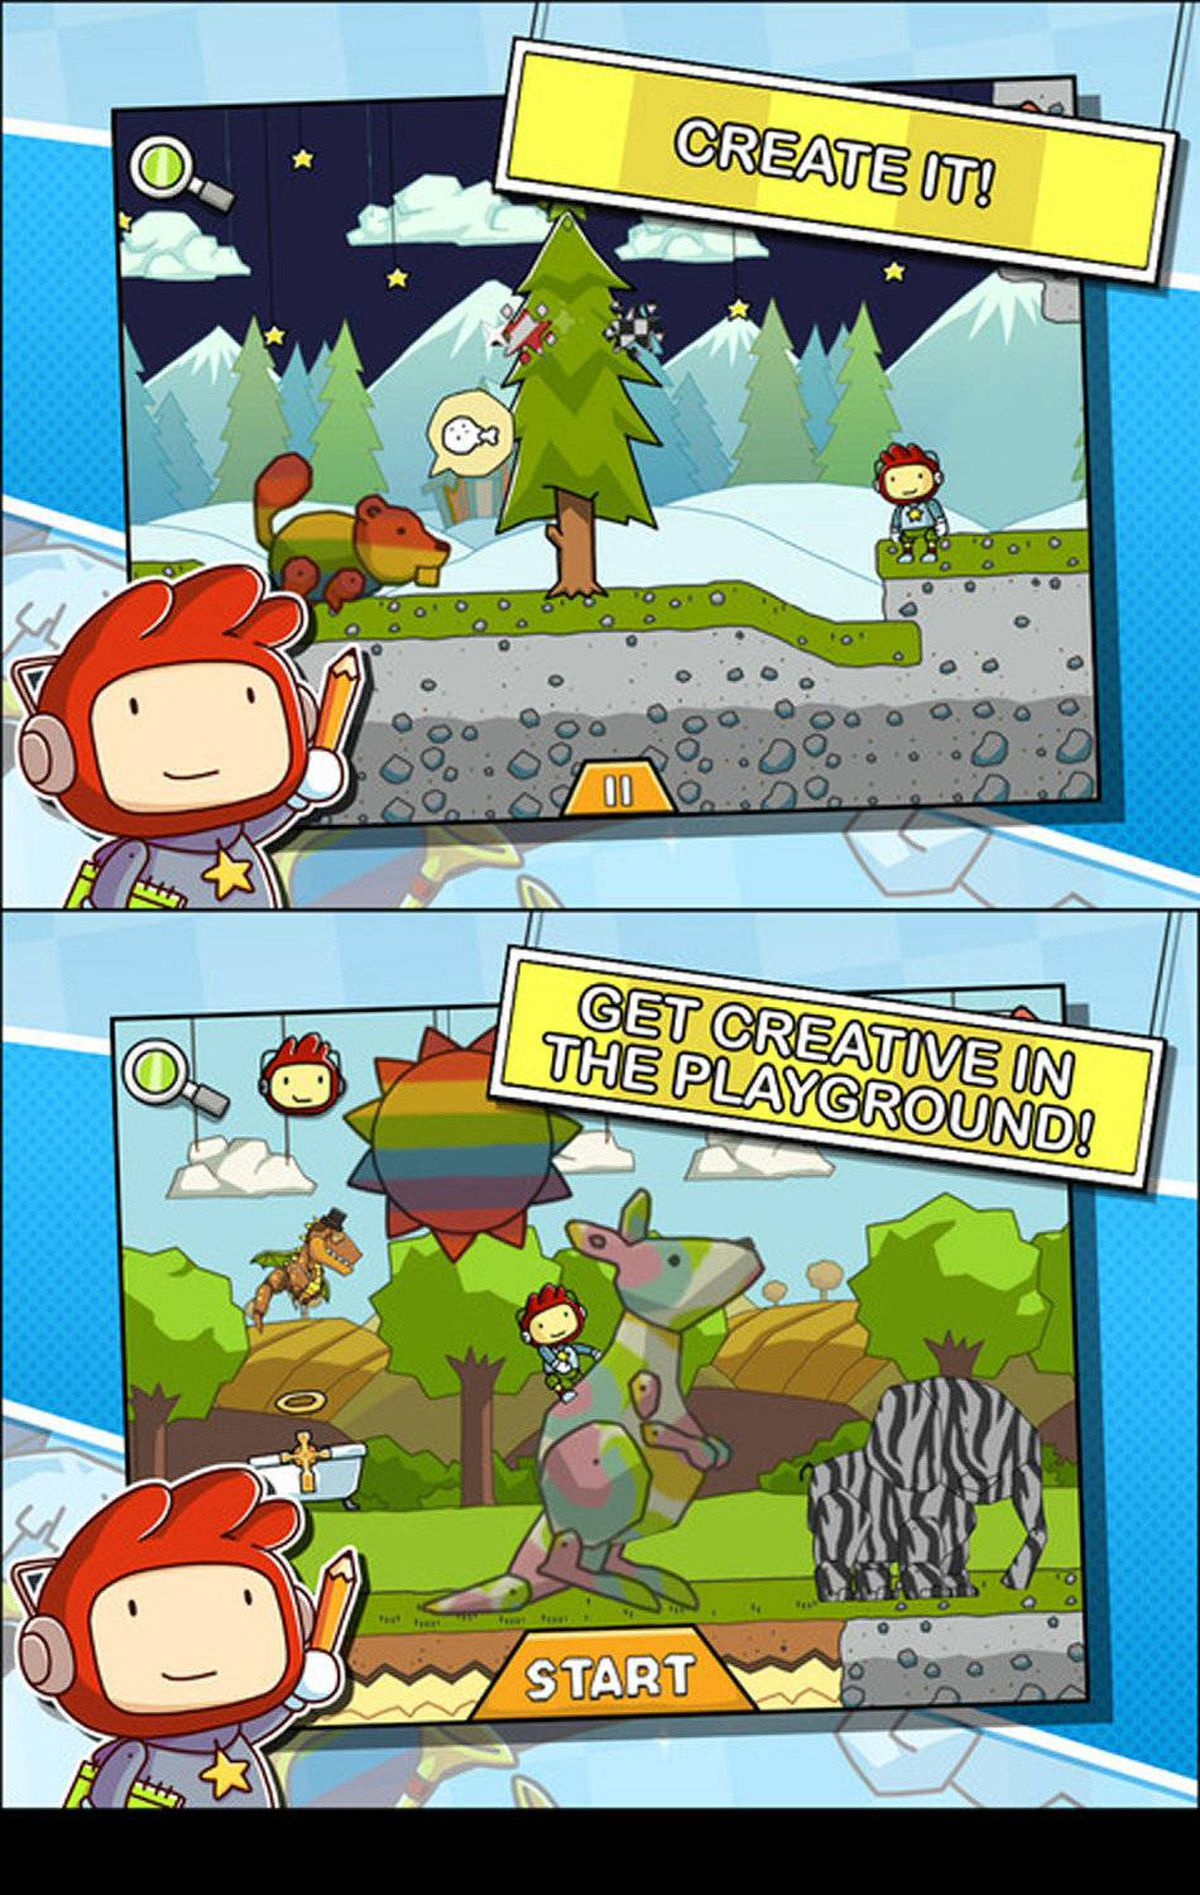 "Scribblenauts Remix One of the coolest video games ever made is also one of the most creative. Scribblenauts Remix is a puzzle game in which your words come to life. If your little guy (Maxwell) needs a ladder, type ""ladder"" to make one appear. If Maxwell needs a pot of gold, type ""rainbow"" and see what happens. Giant robot? Check. Dinosaur? You bet. Part of the fun of Scribblenauts is entering words just to see if the game makers anticipated your ideas. The game works so well because thousands of animated objects WERE included, and appear when you ask for them. ($0.99, universal, scribblenautsremix.com)"